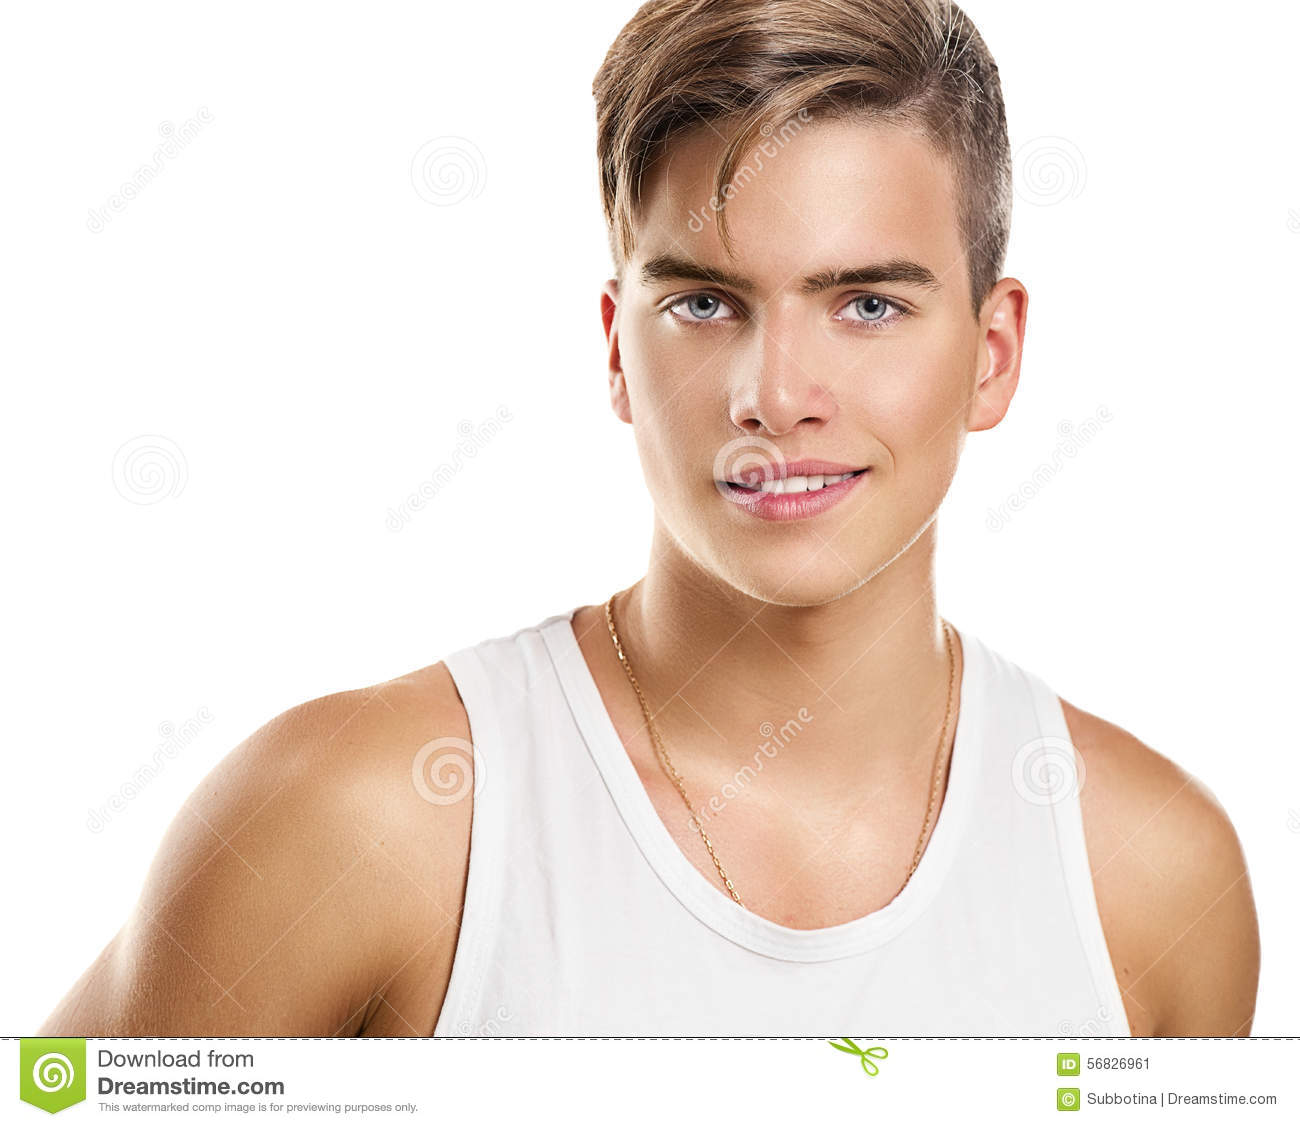 Download Handsome Athletic Young Man Stock Image - Image of athletic, muscular: 56826961